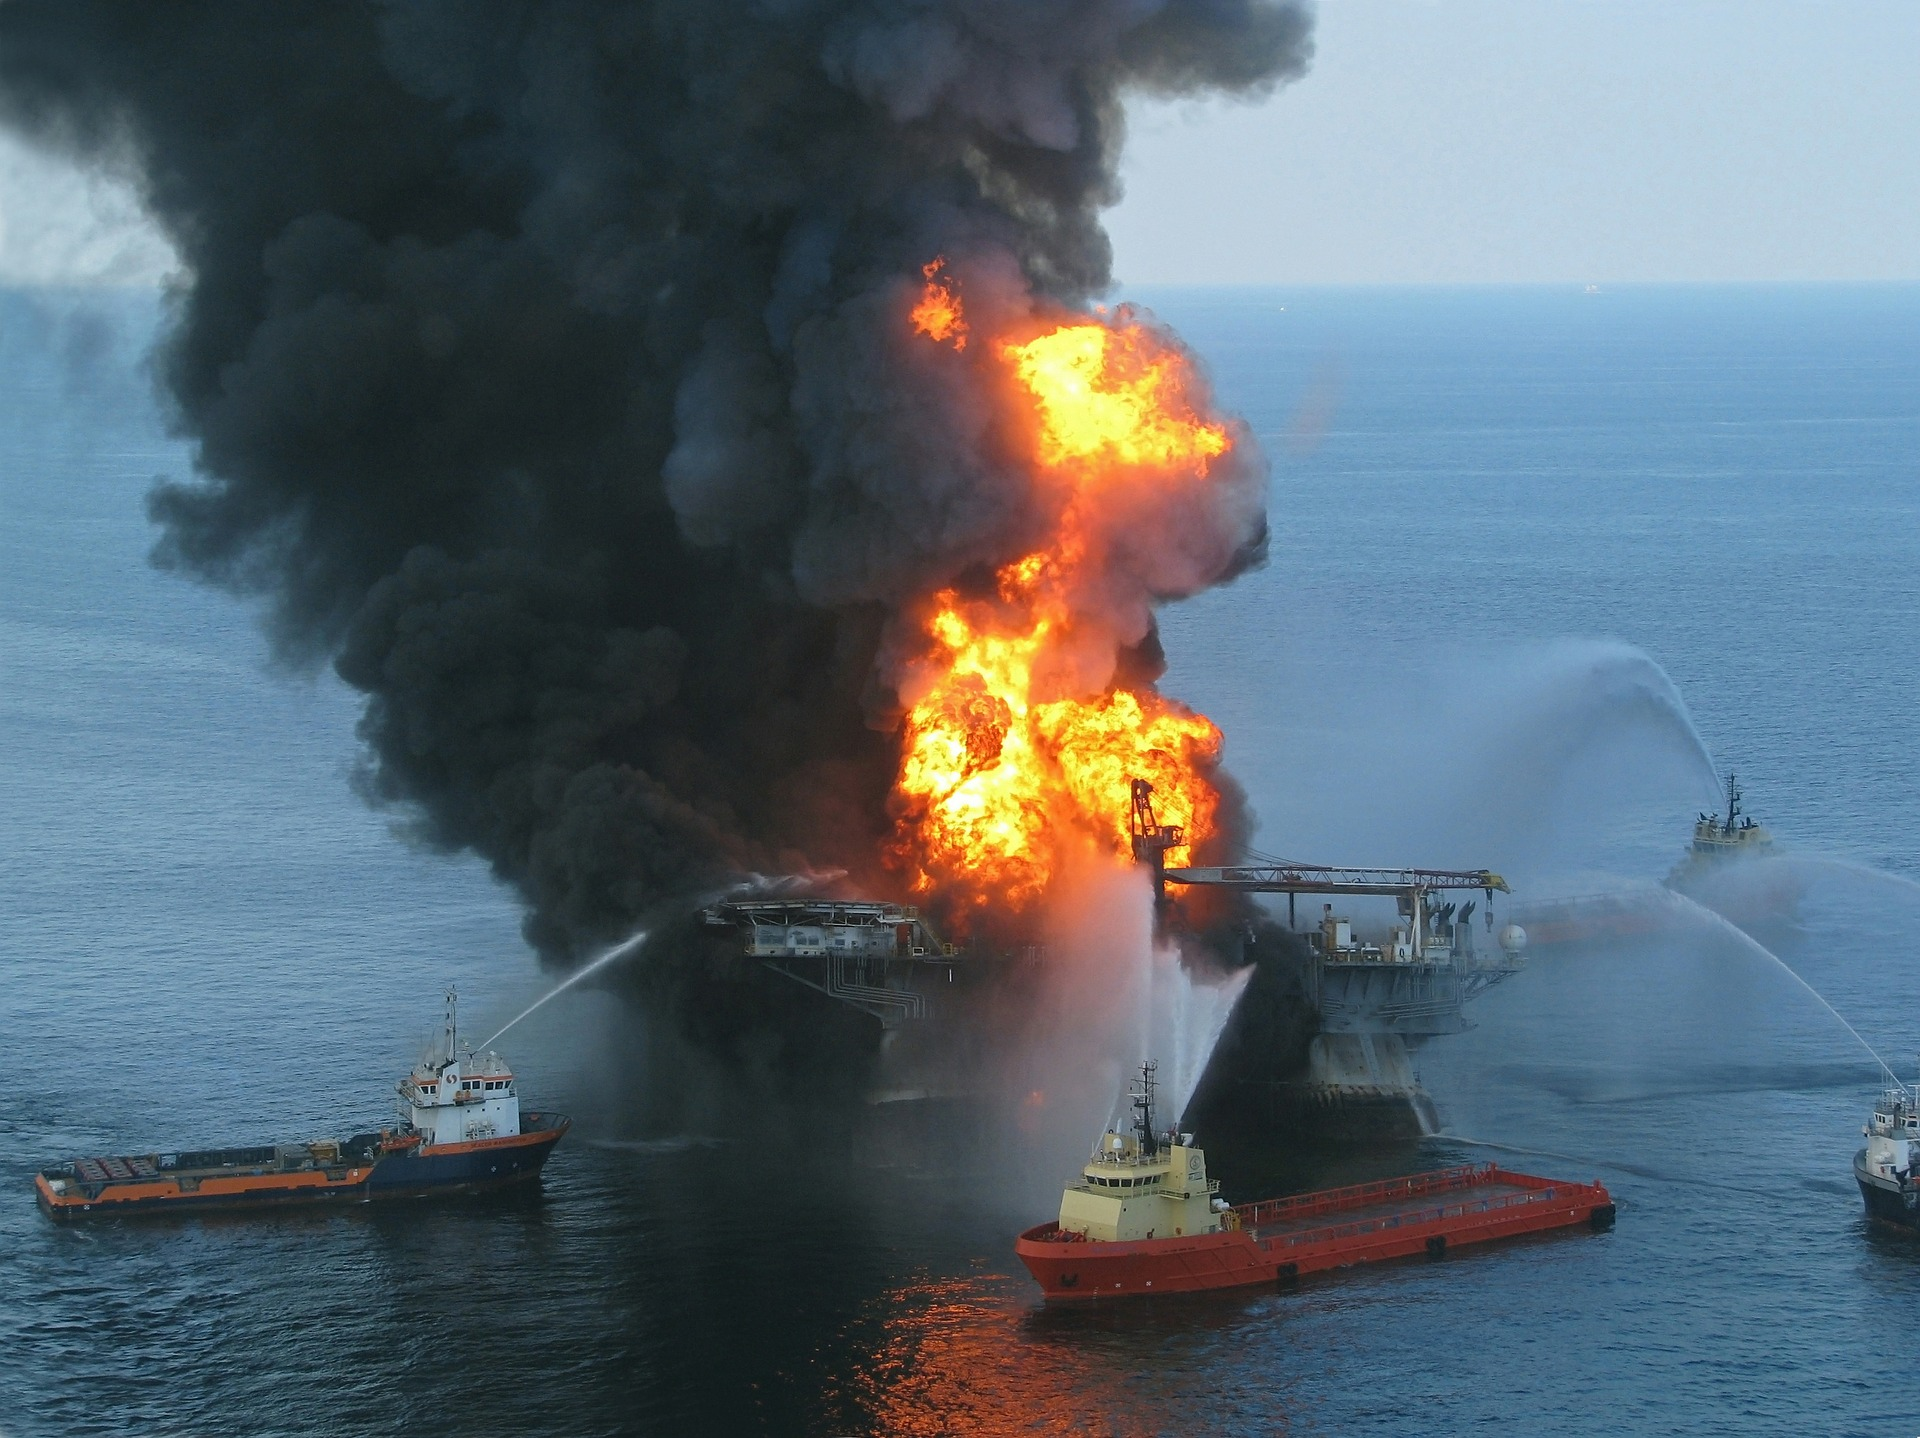 oil-rig-explosion-618704_1920